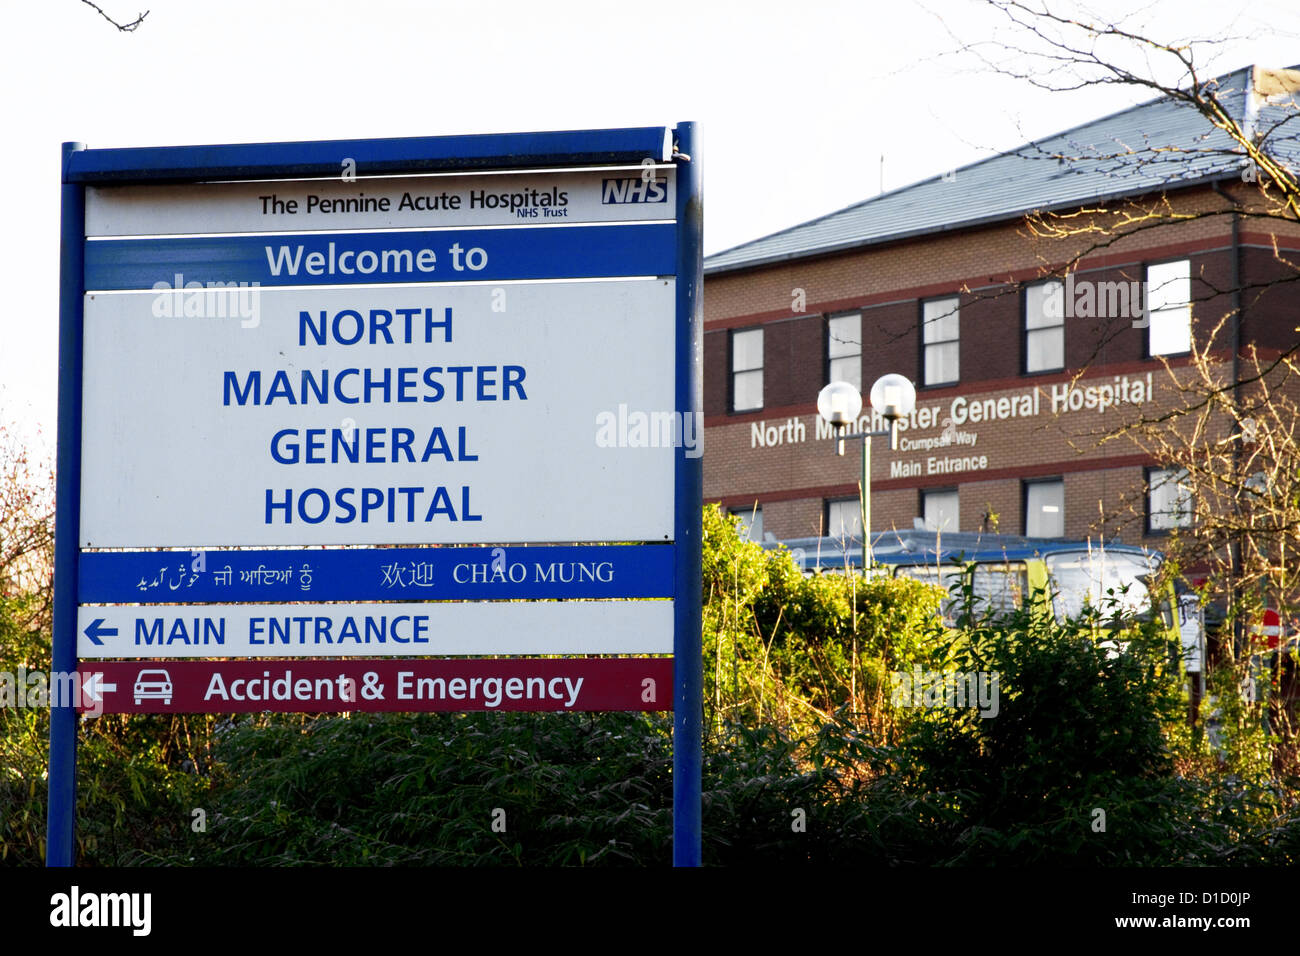 North Manchester General Hospital, Crumpsall, Manchester, England, UK - Stock Image